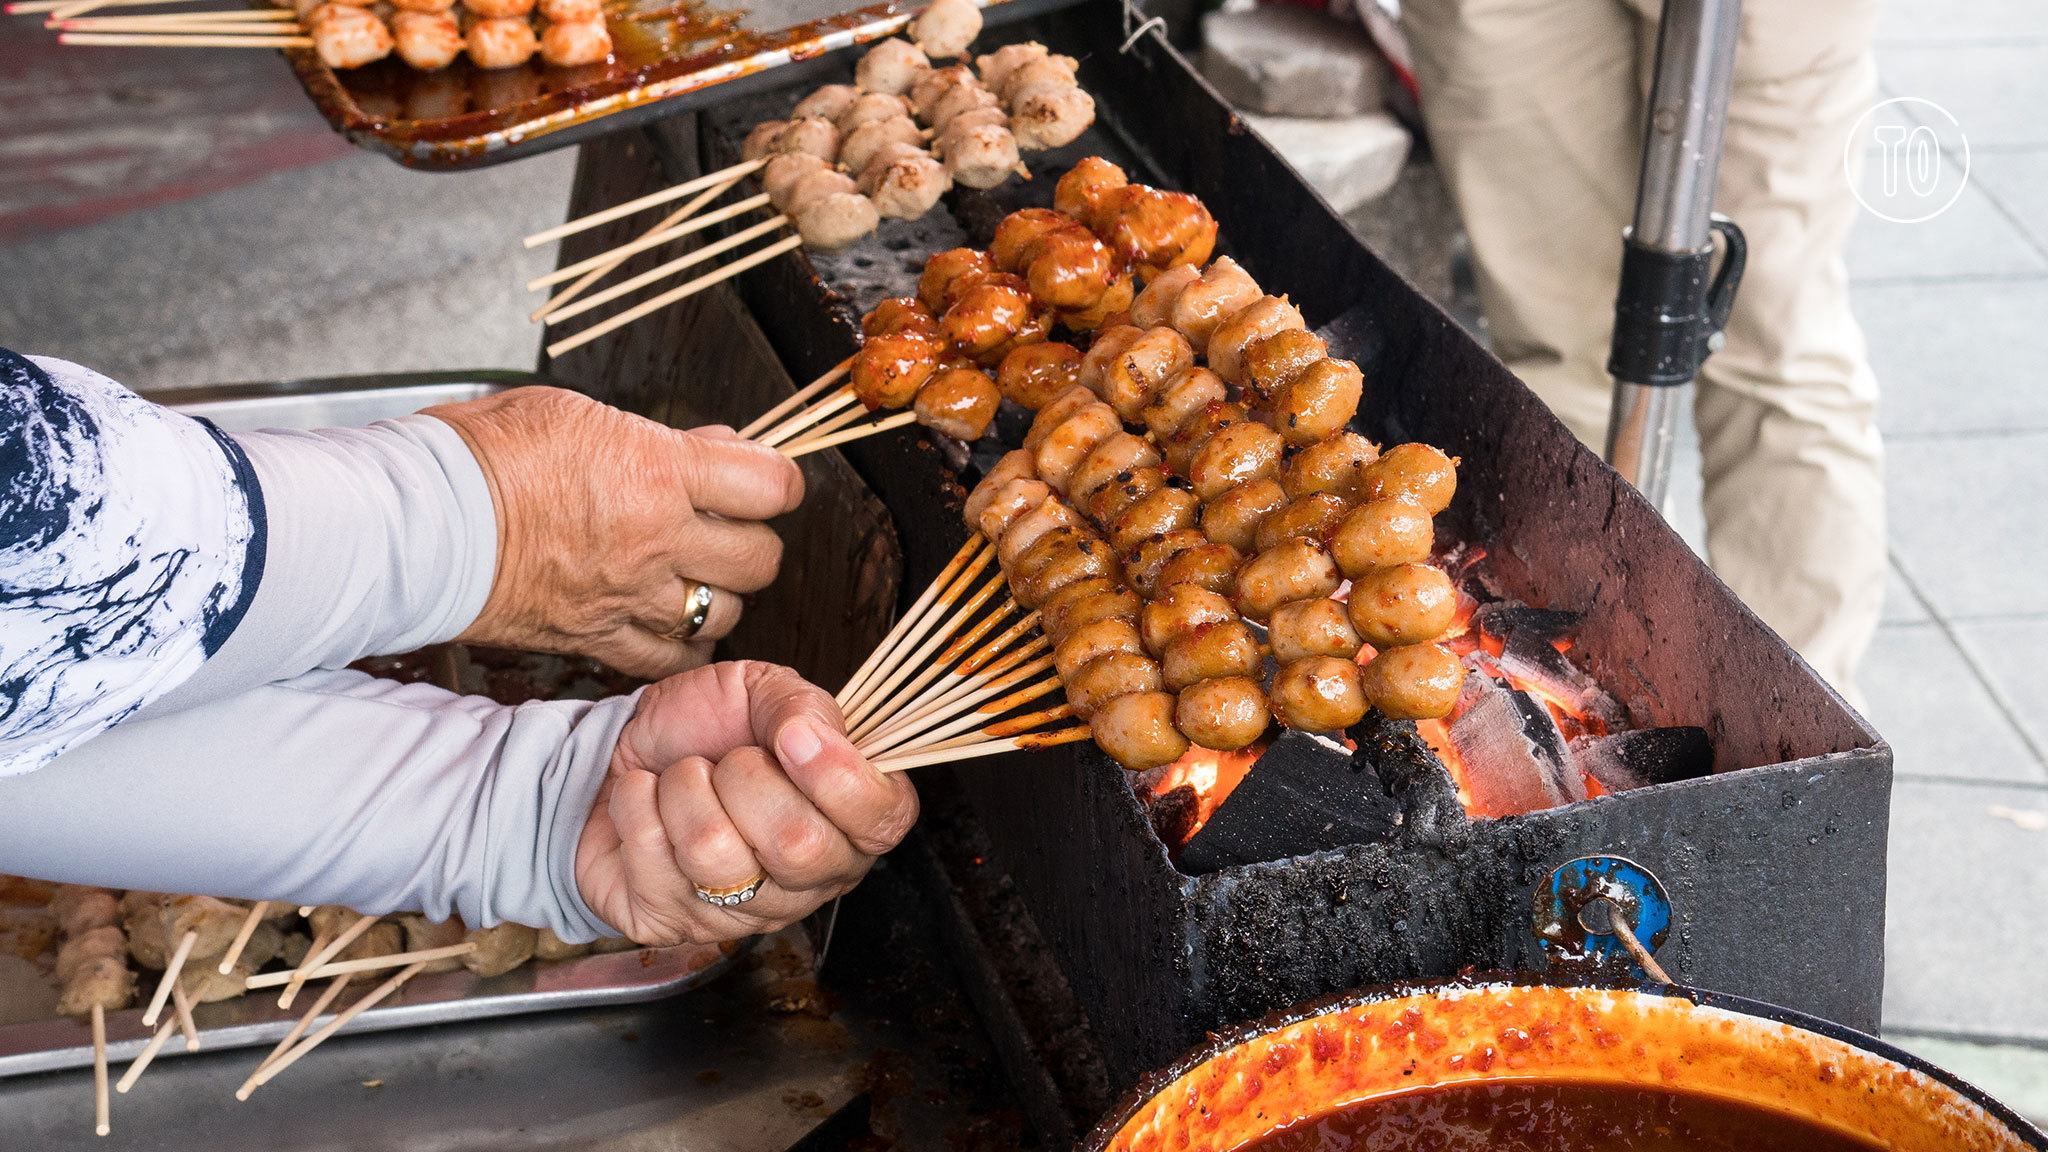 Where to find the best street food at Banglamphoo